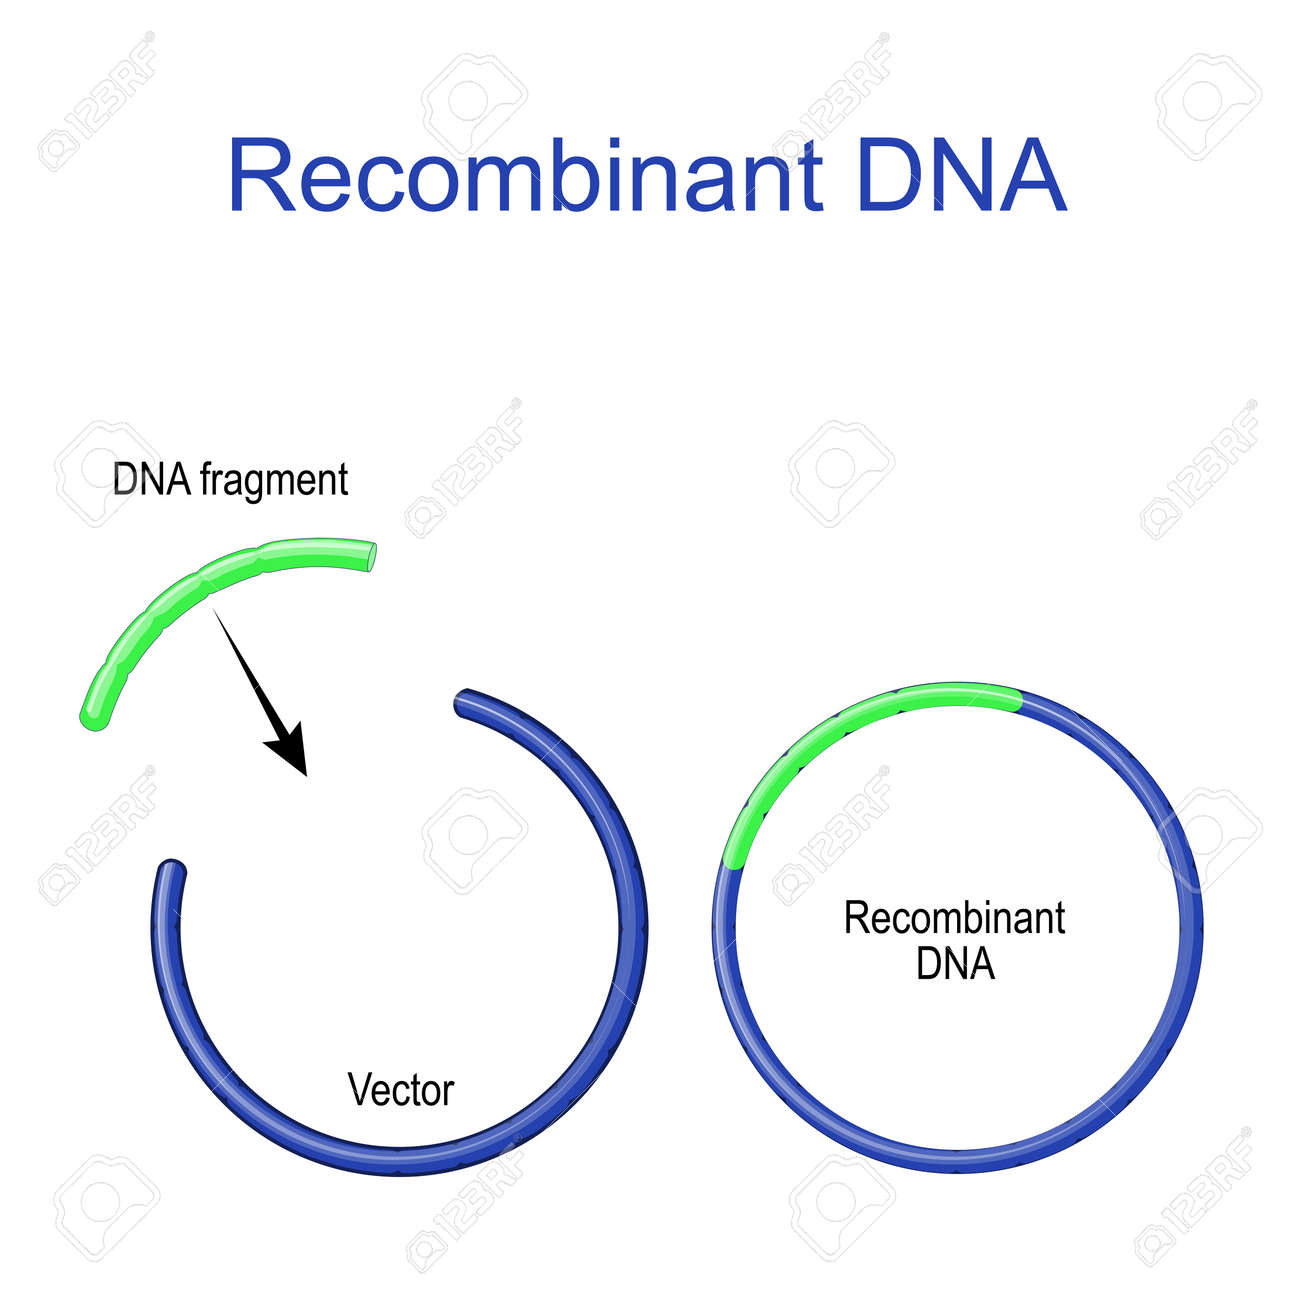 Plasmids and Recombinant DNA. foreign DNA fragment is inserted into a plasmid vector. Gene cloning. recombinant subunit vaccine. Molecular Biology. scientific research - 173872206